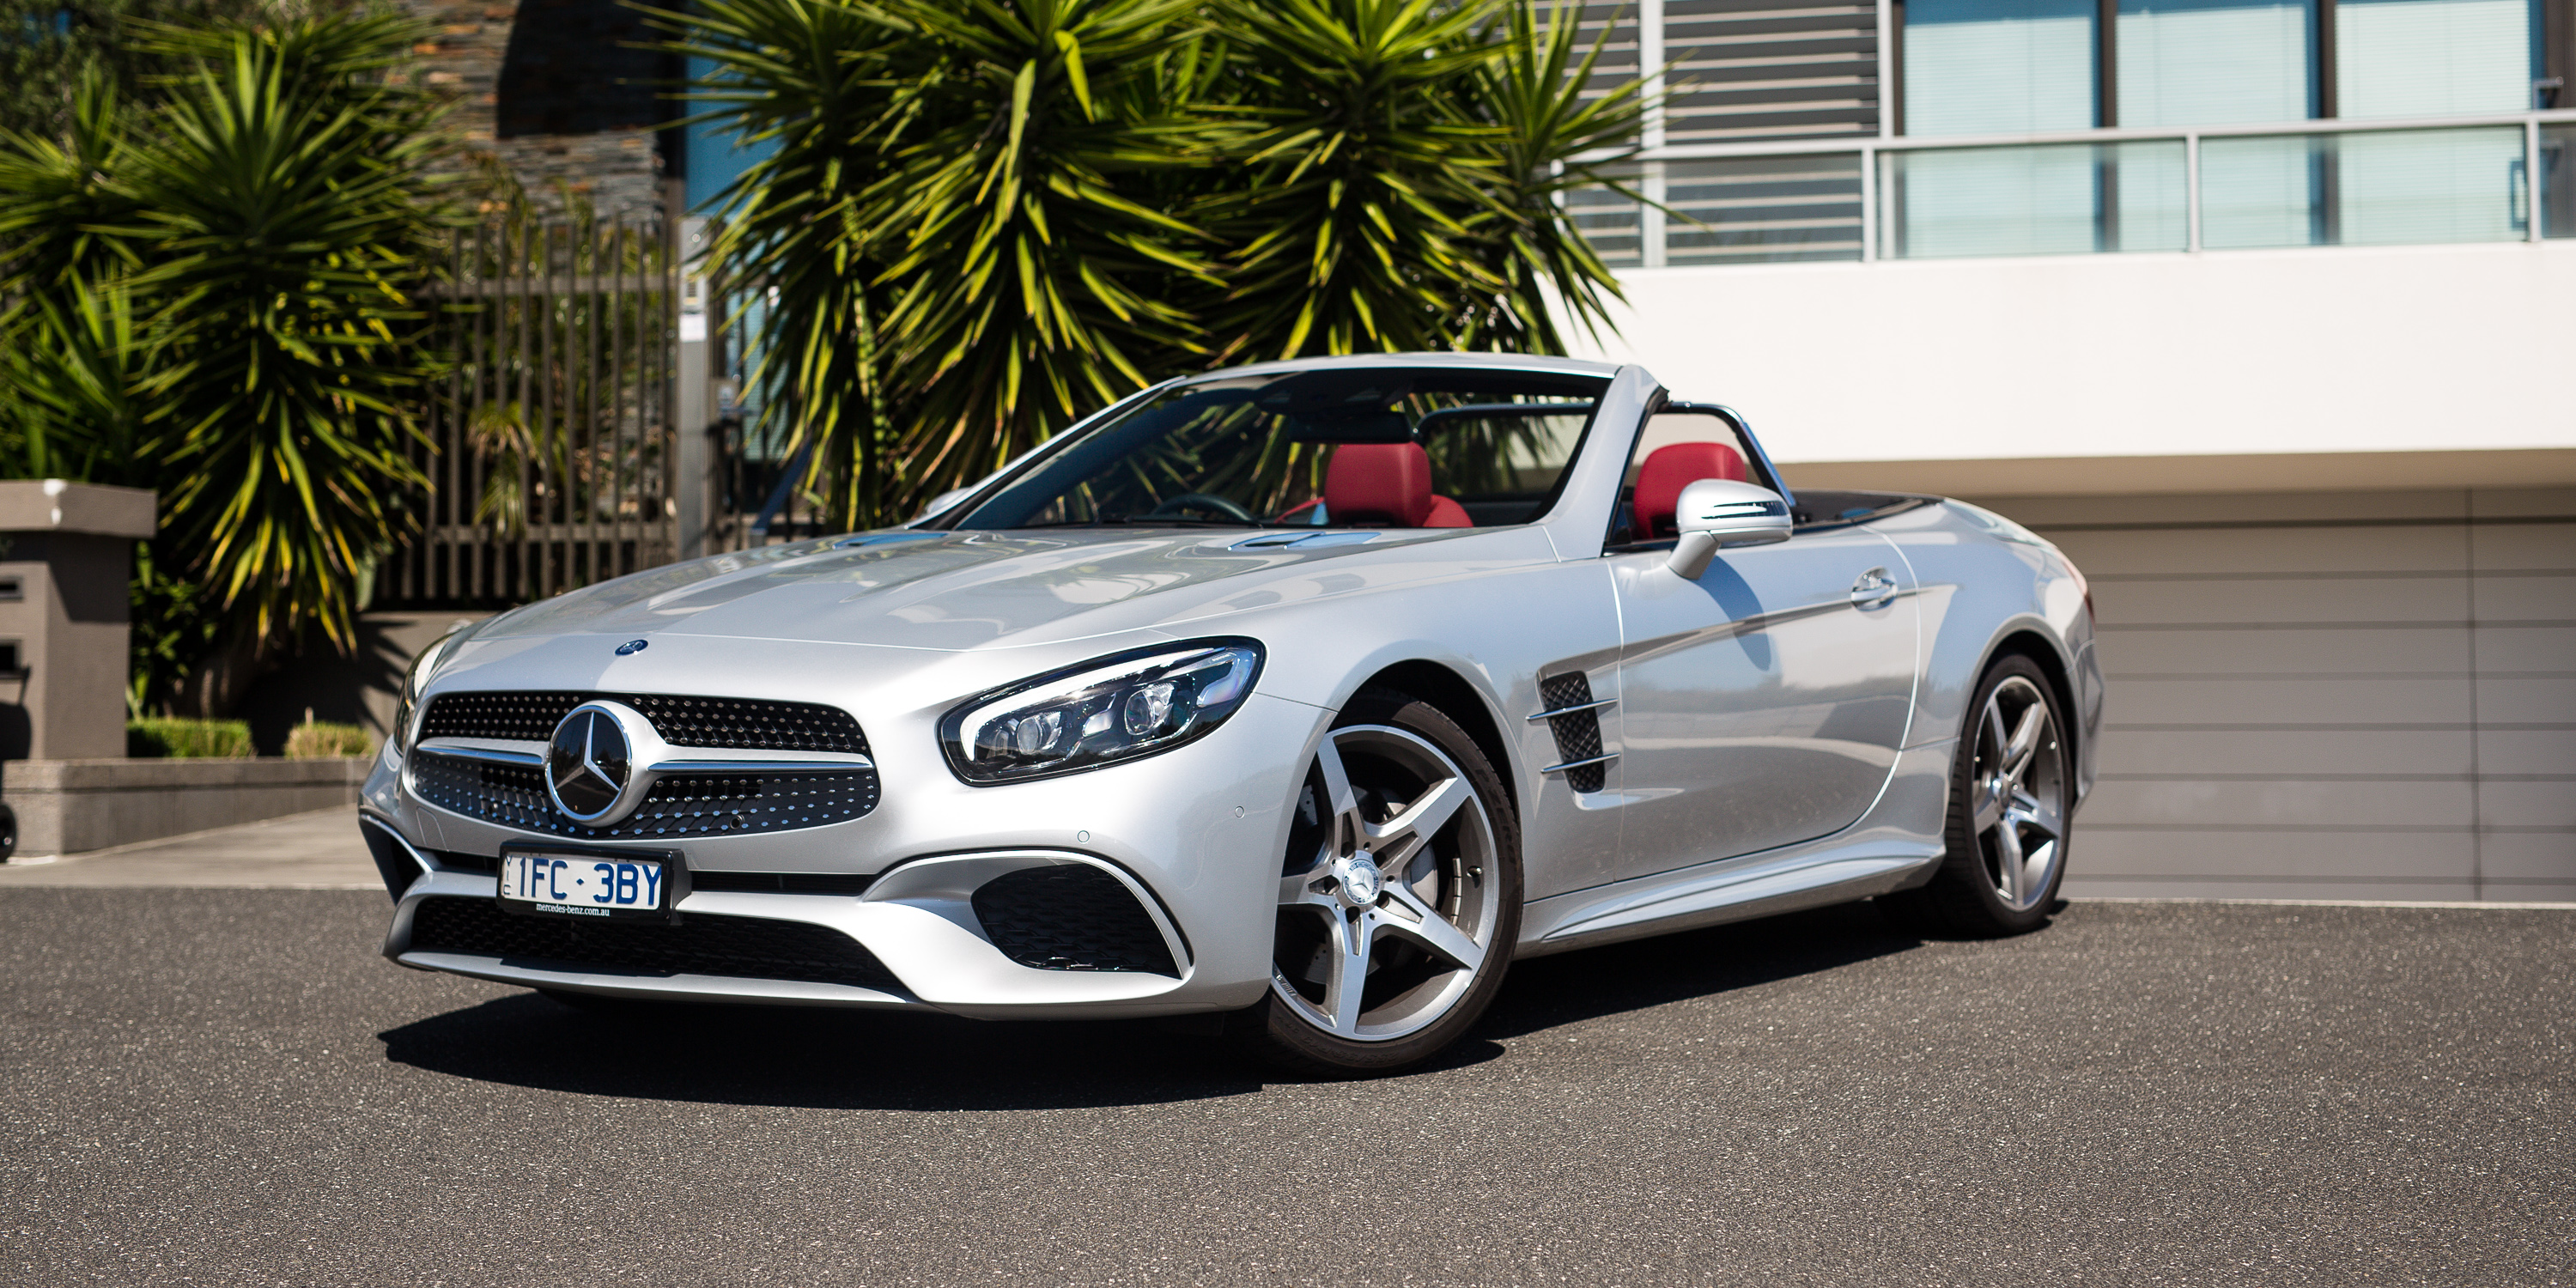 2017 mercedes benz sl400 review photos caradvice for Mercedes benz small car